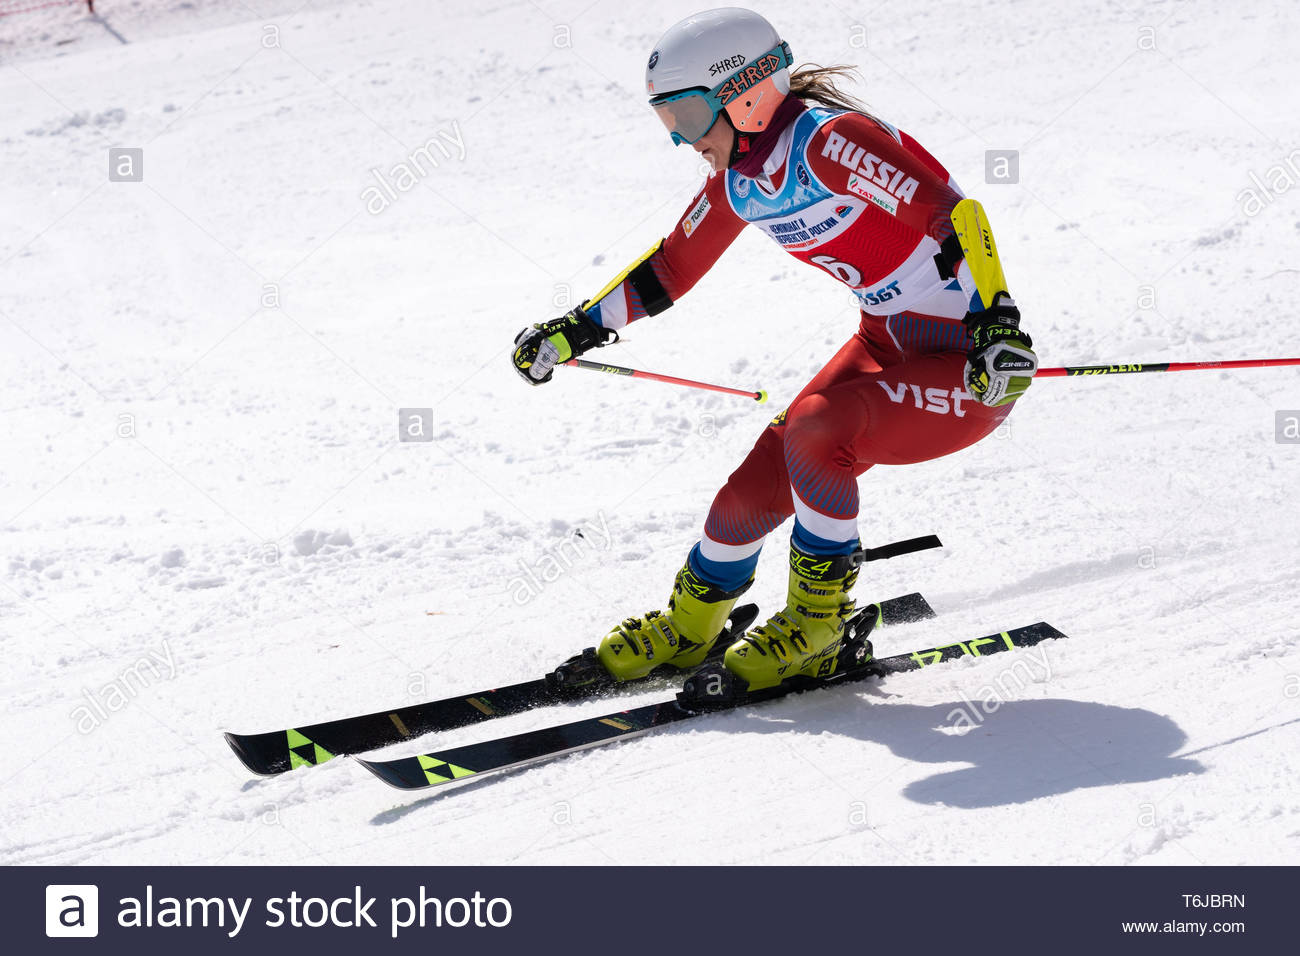 KAMCHATKA PENINSULA, RUSSIAN FEDERATION - APRIL 1, 2019: Russian Women's Alpine Skiing Championship, giant slalom. Mountain skier Krokhina Sofya (Mosc - Stock Image